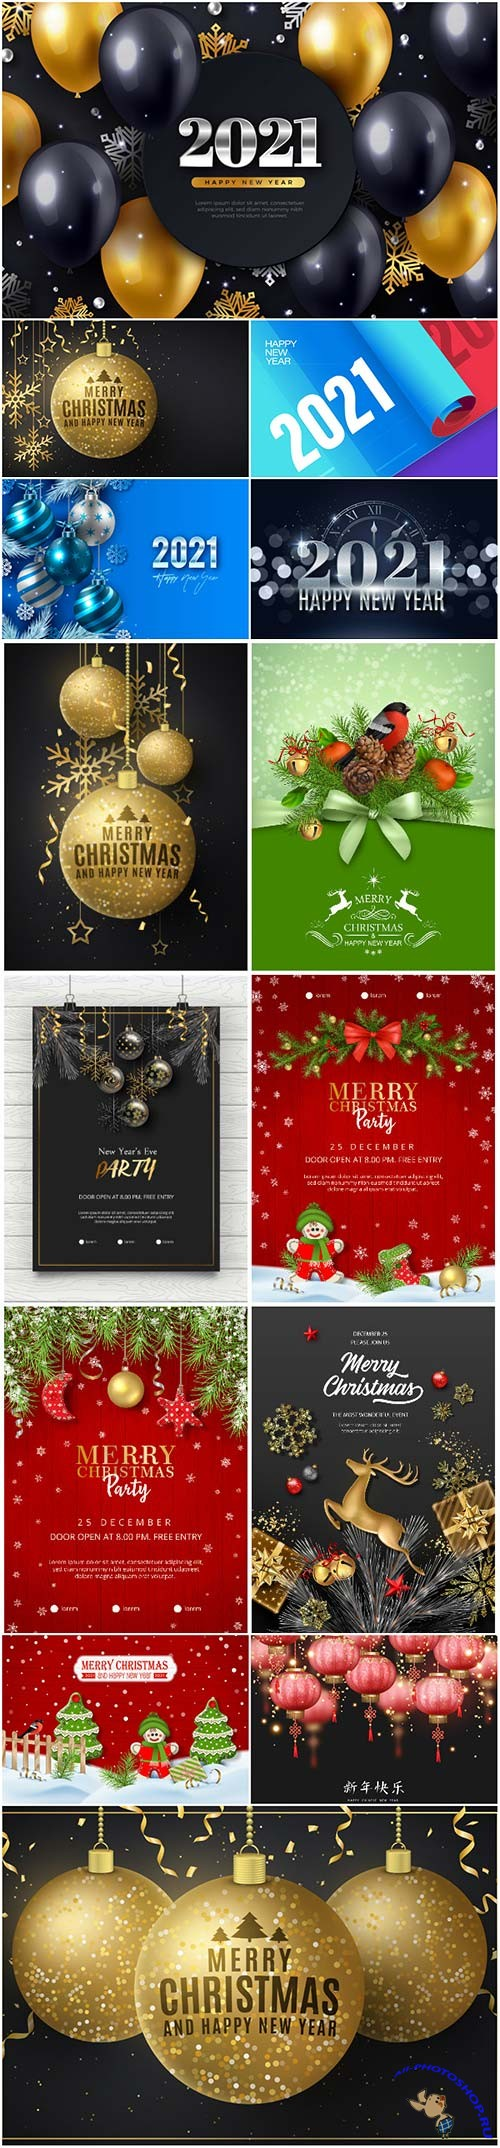 Christmas and new year vector poster